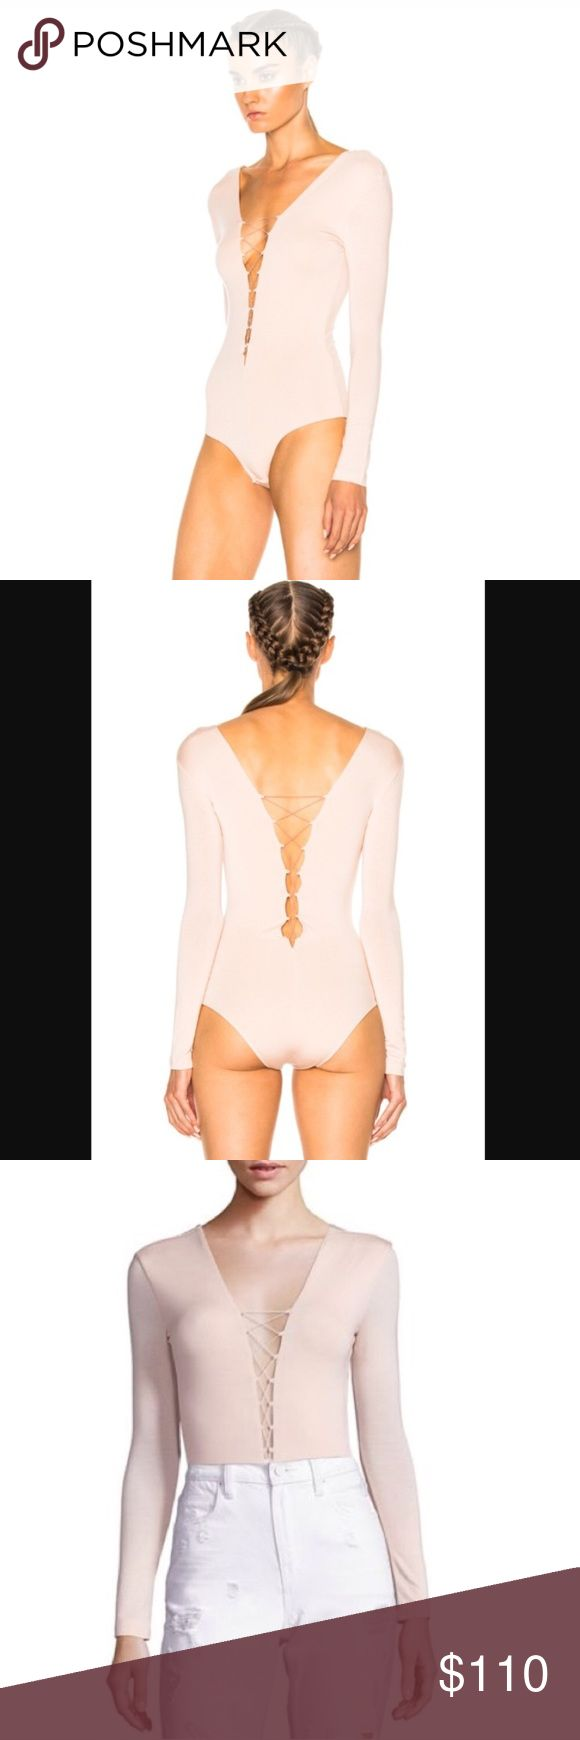 NWTT by ALEXANDER WANG nude blush lace up bodysuit NWT! I bought this in pretty much every color along with the strappy midi dresses that came out this season and this one was final sale so couldn't return it. Flawless and new, selling only because I have too much. Perfect with a pleated skirt or jeans! Dress up or down :). MSRP 160+tax! T by Alexander Wang Tops